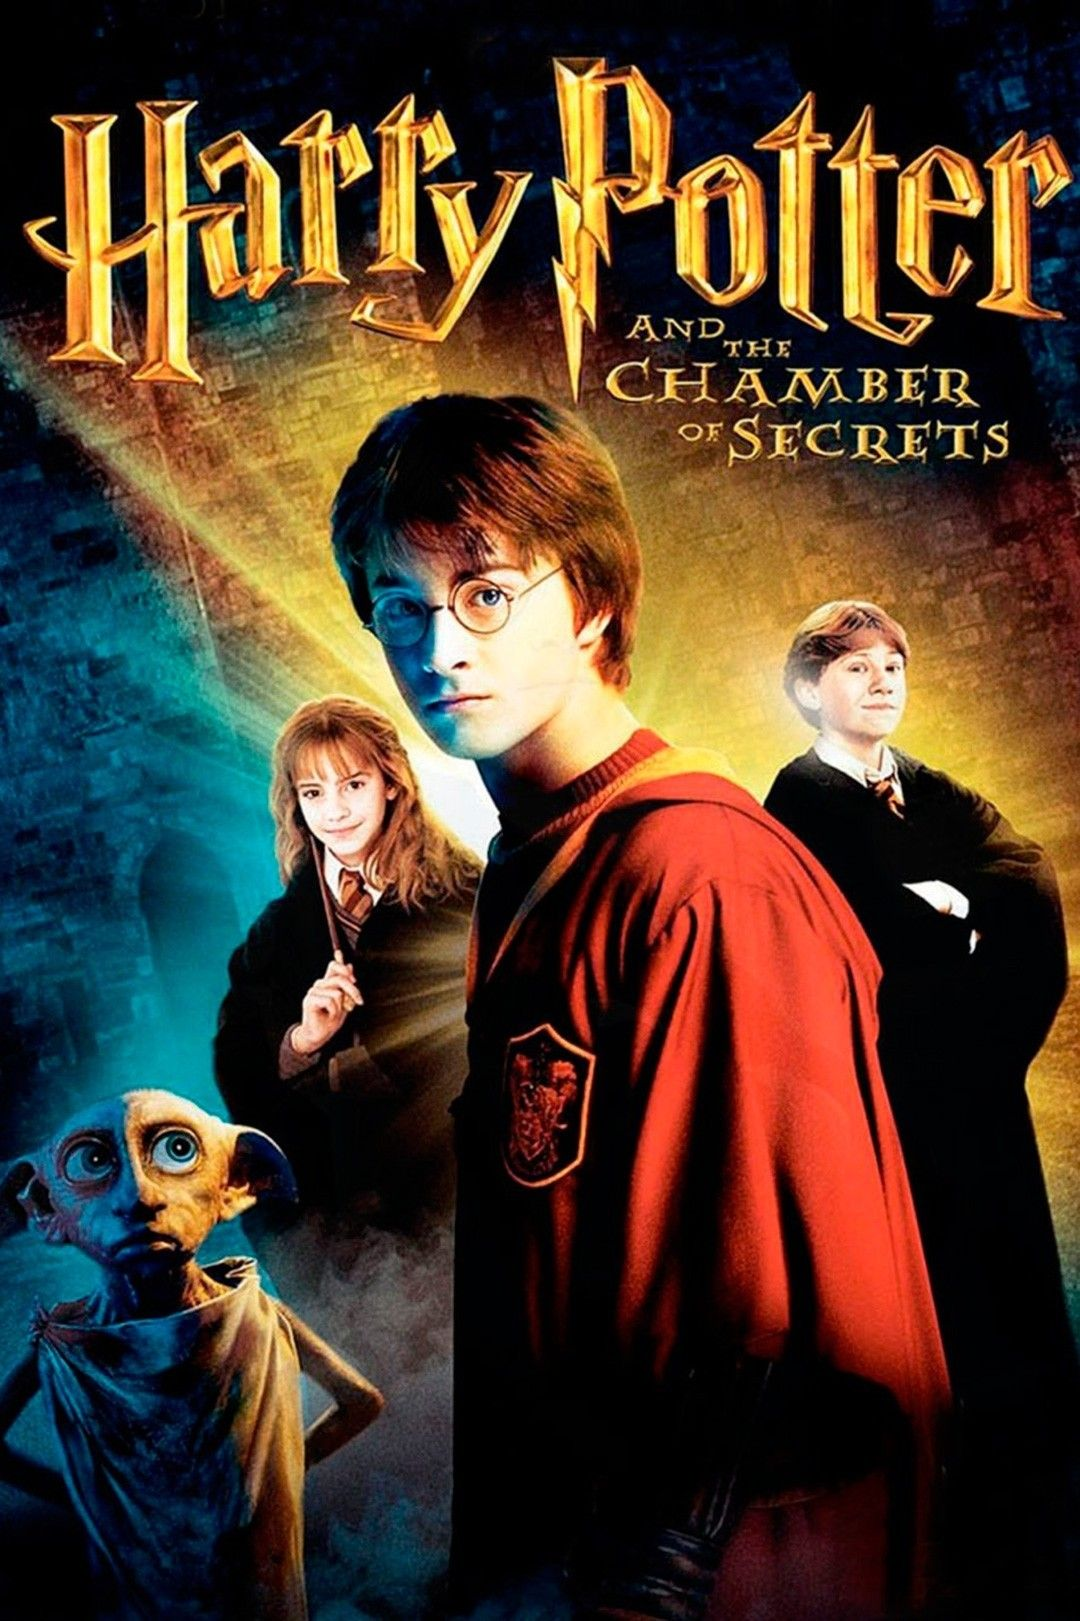 Pin By Snĕhă Ingh On Movie Collection Harry Potter Movie Posters Harry Potter All Movies Harry Potter Film